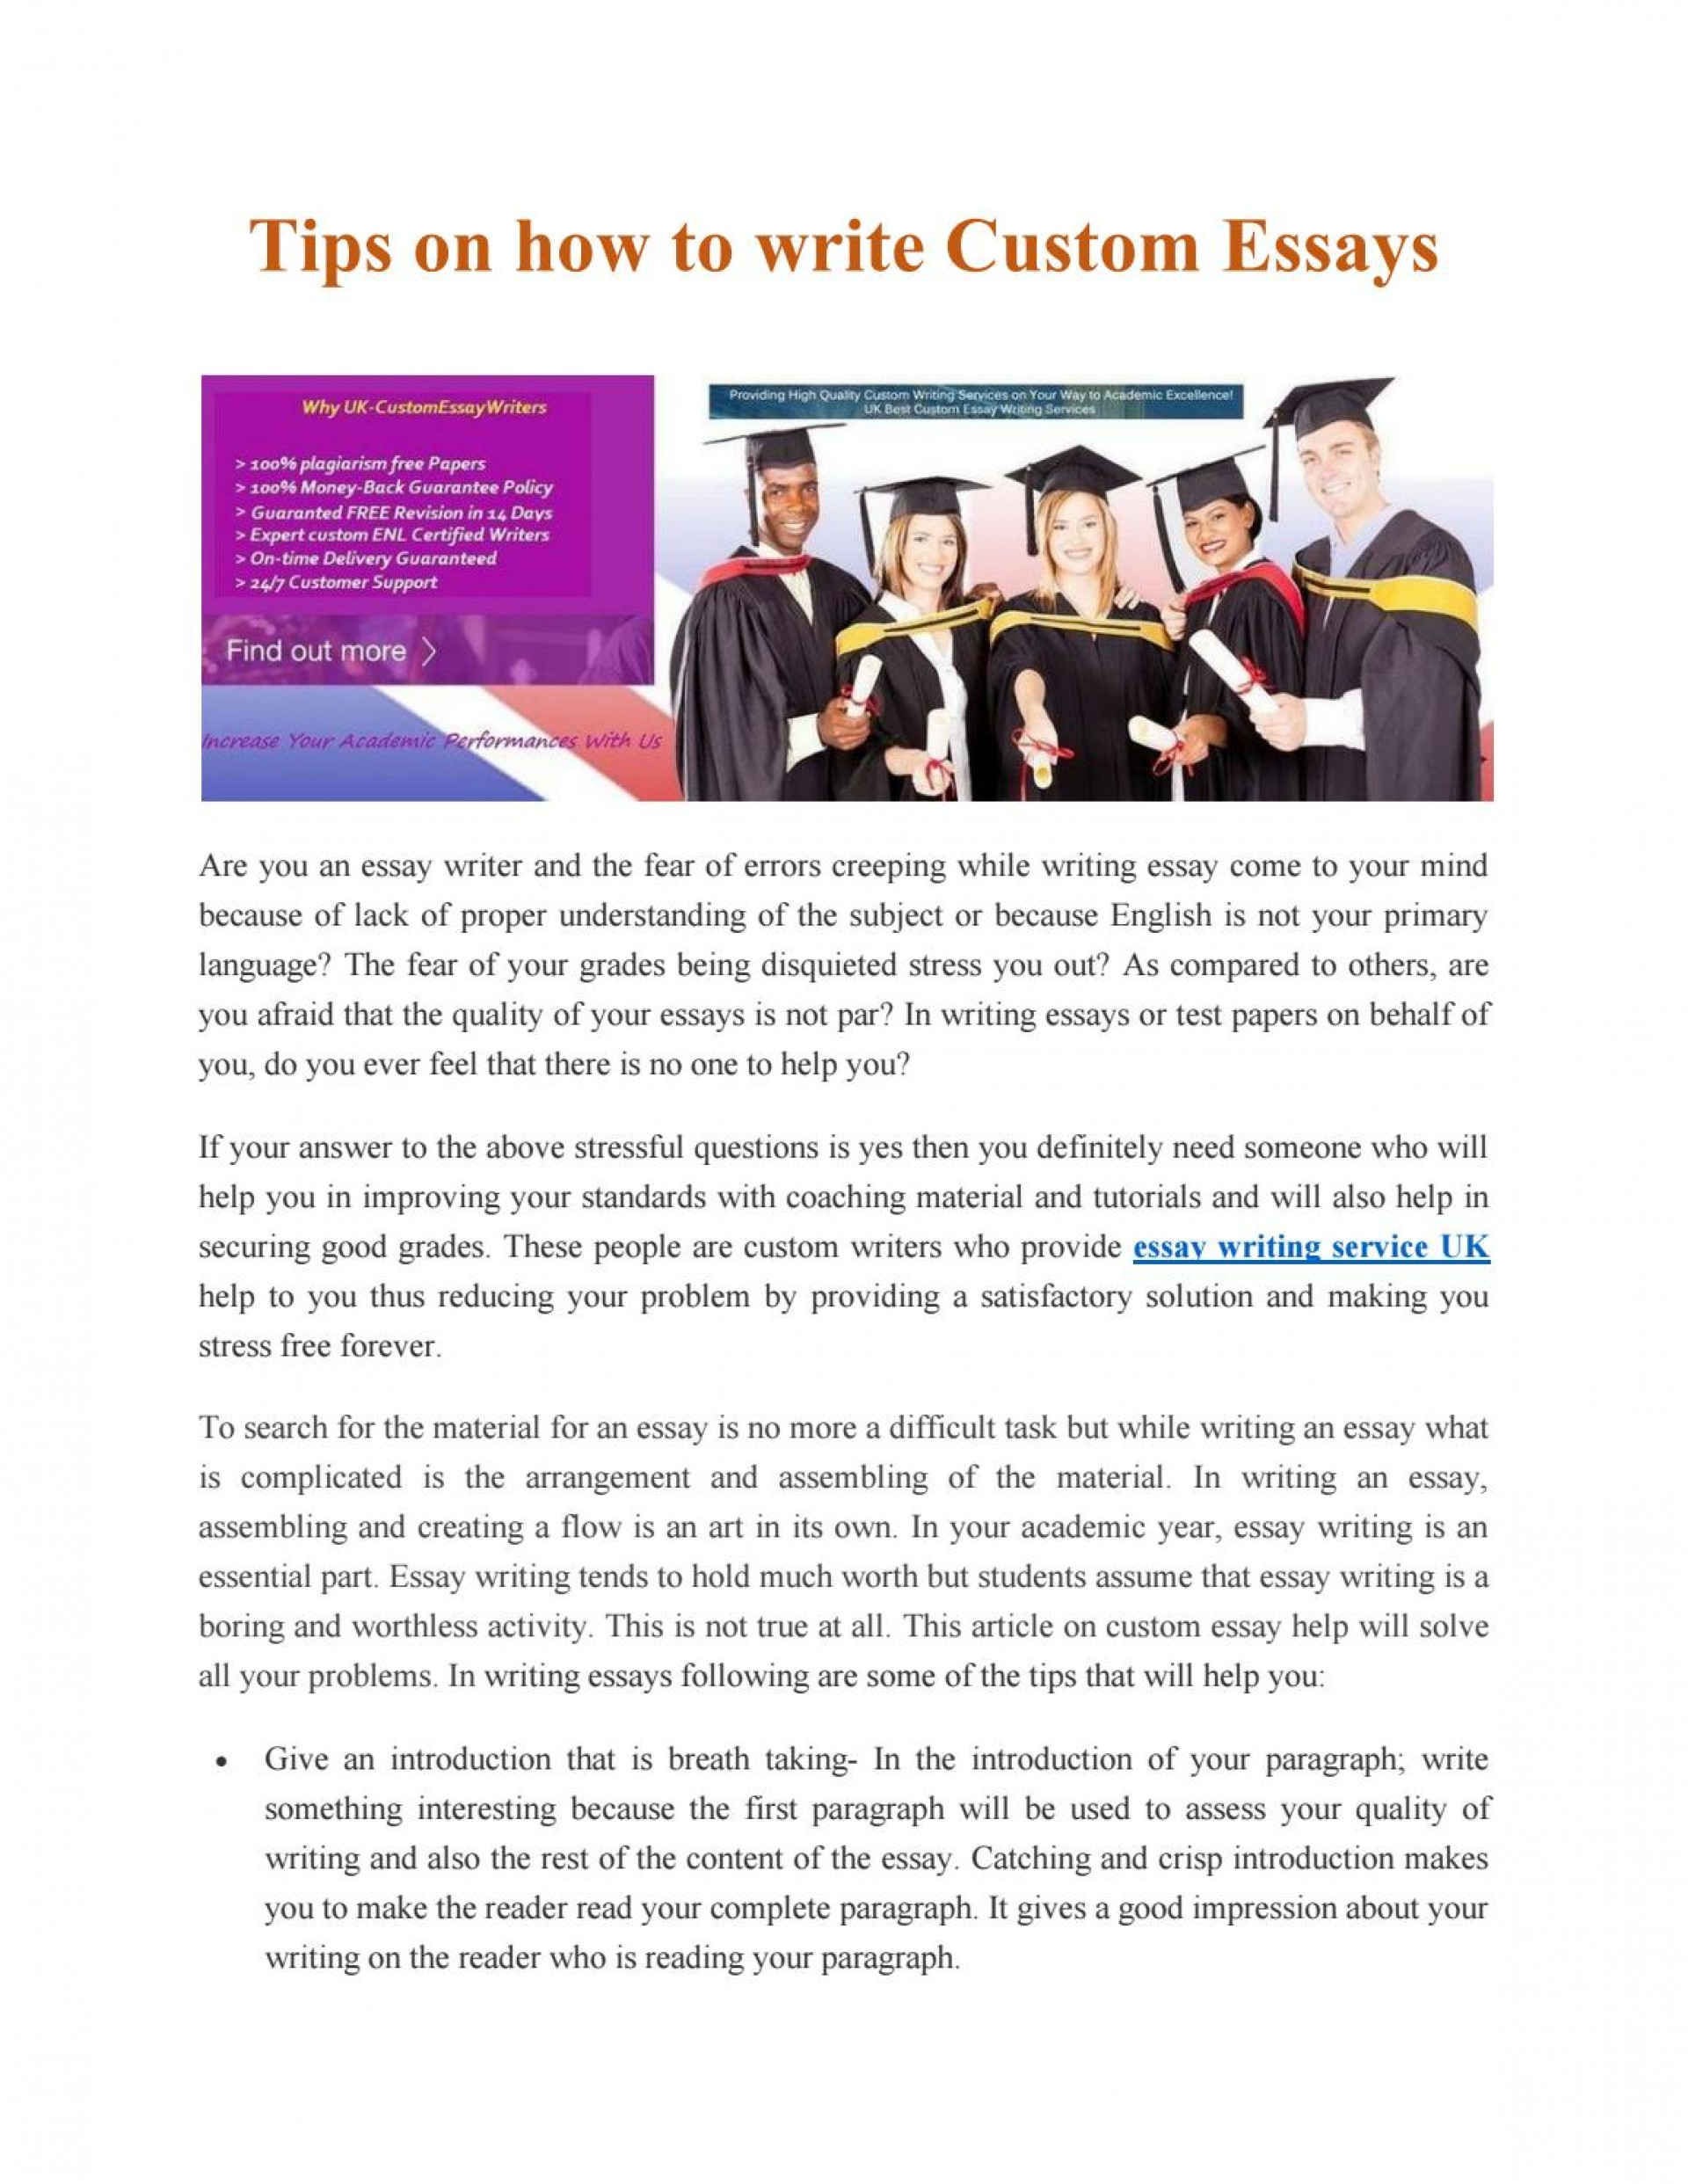 010 Essay Example Page 1 Custom Awesome Writing Services Canada Reviews Service Uk 1920